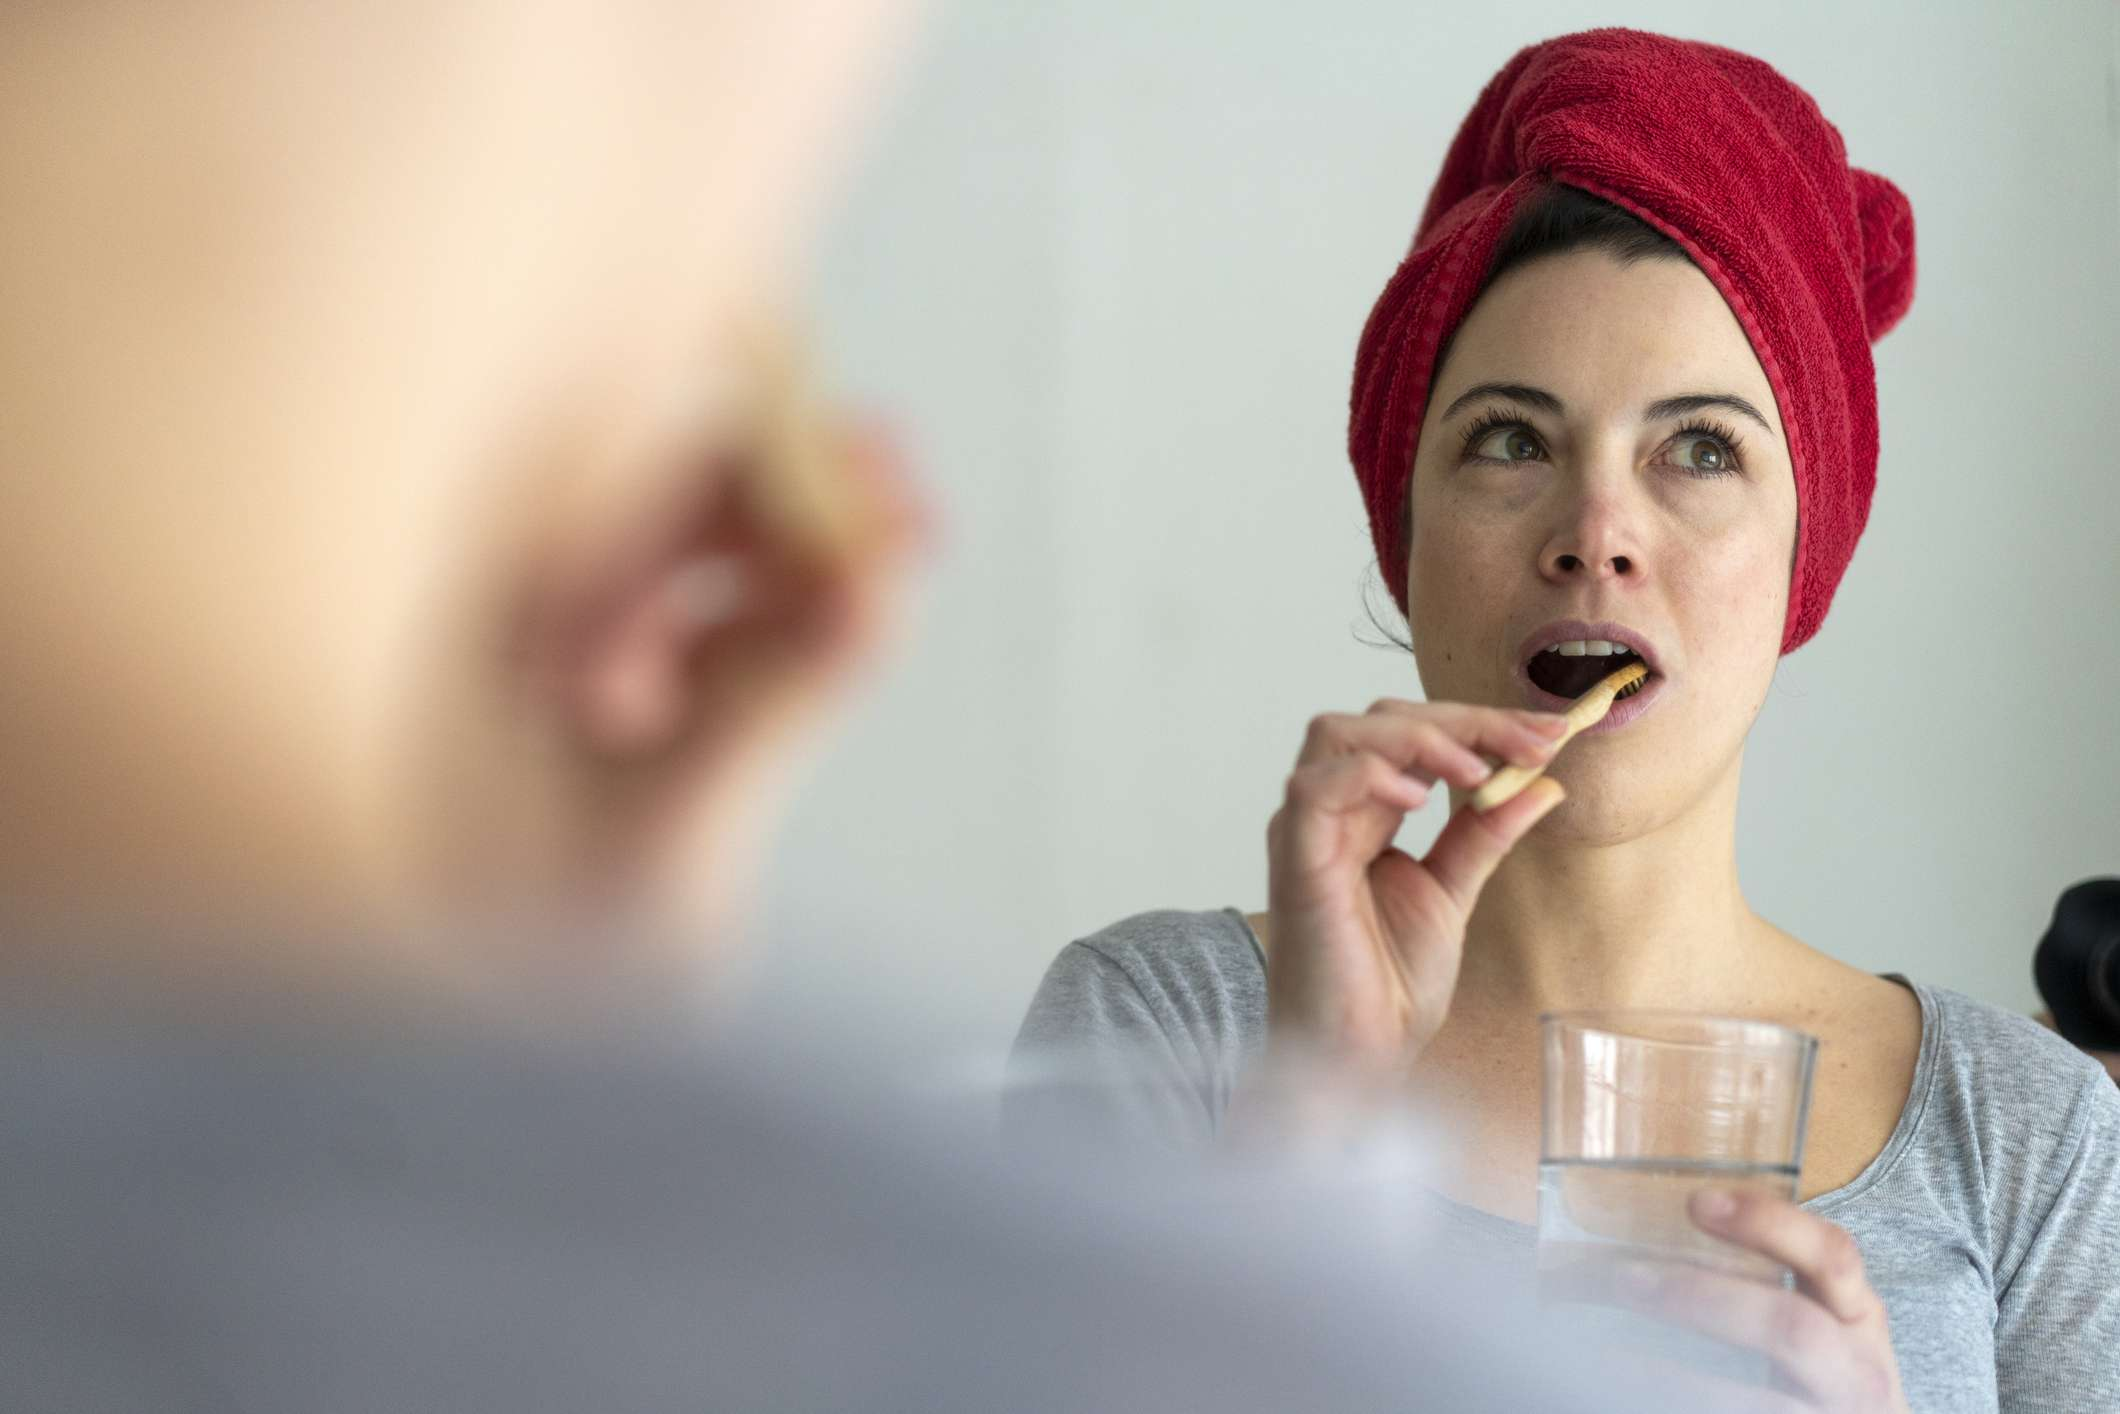 A woman brushes her teeth with a red towel on her head.